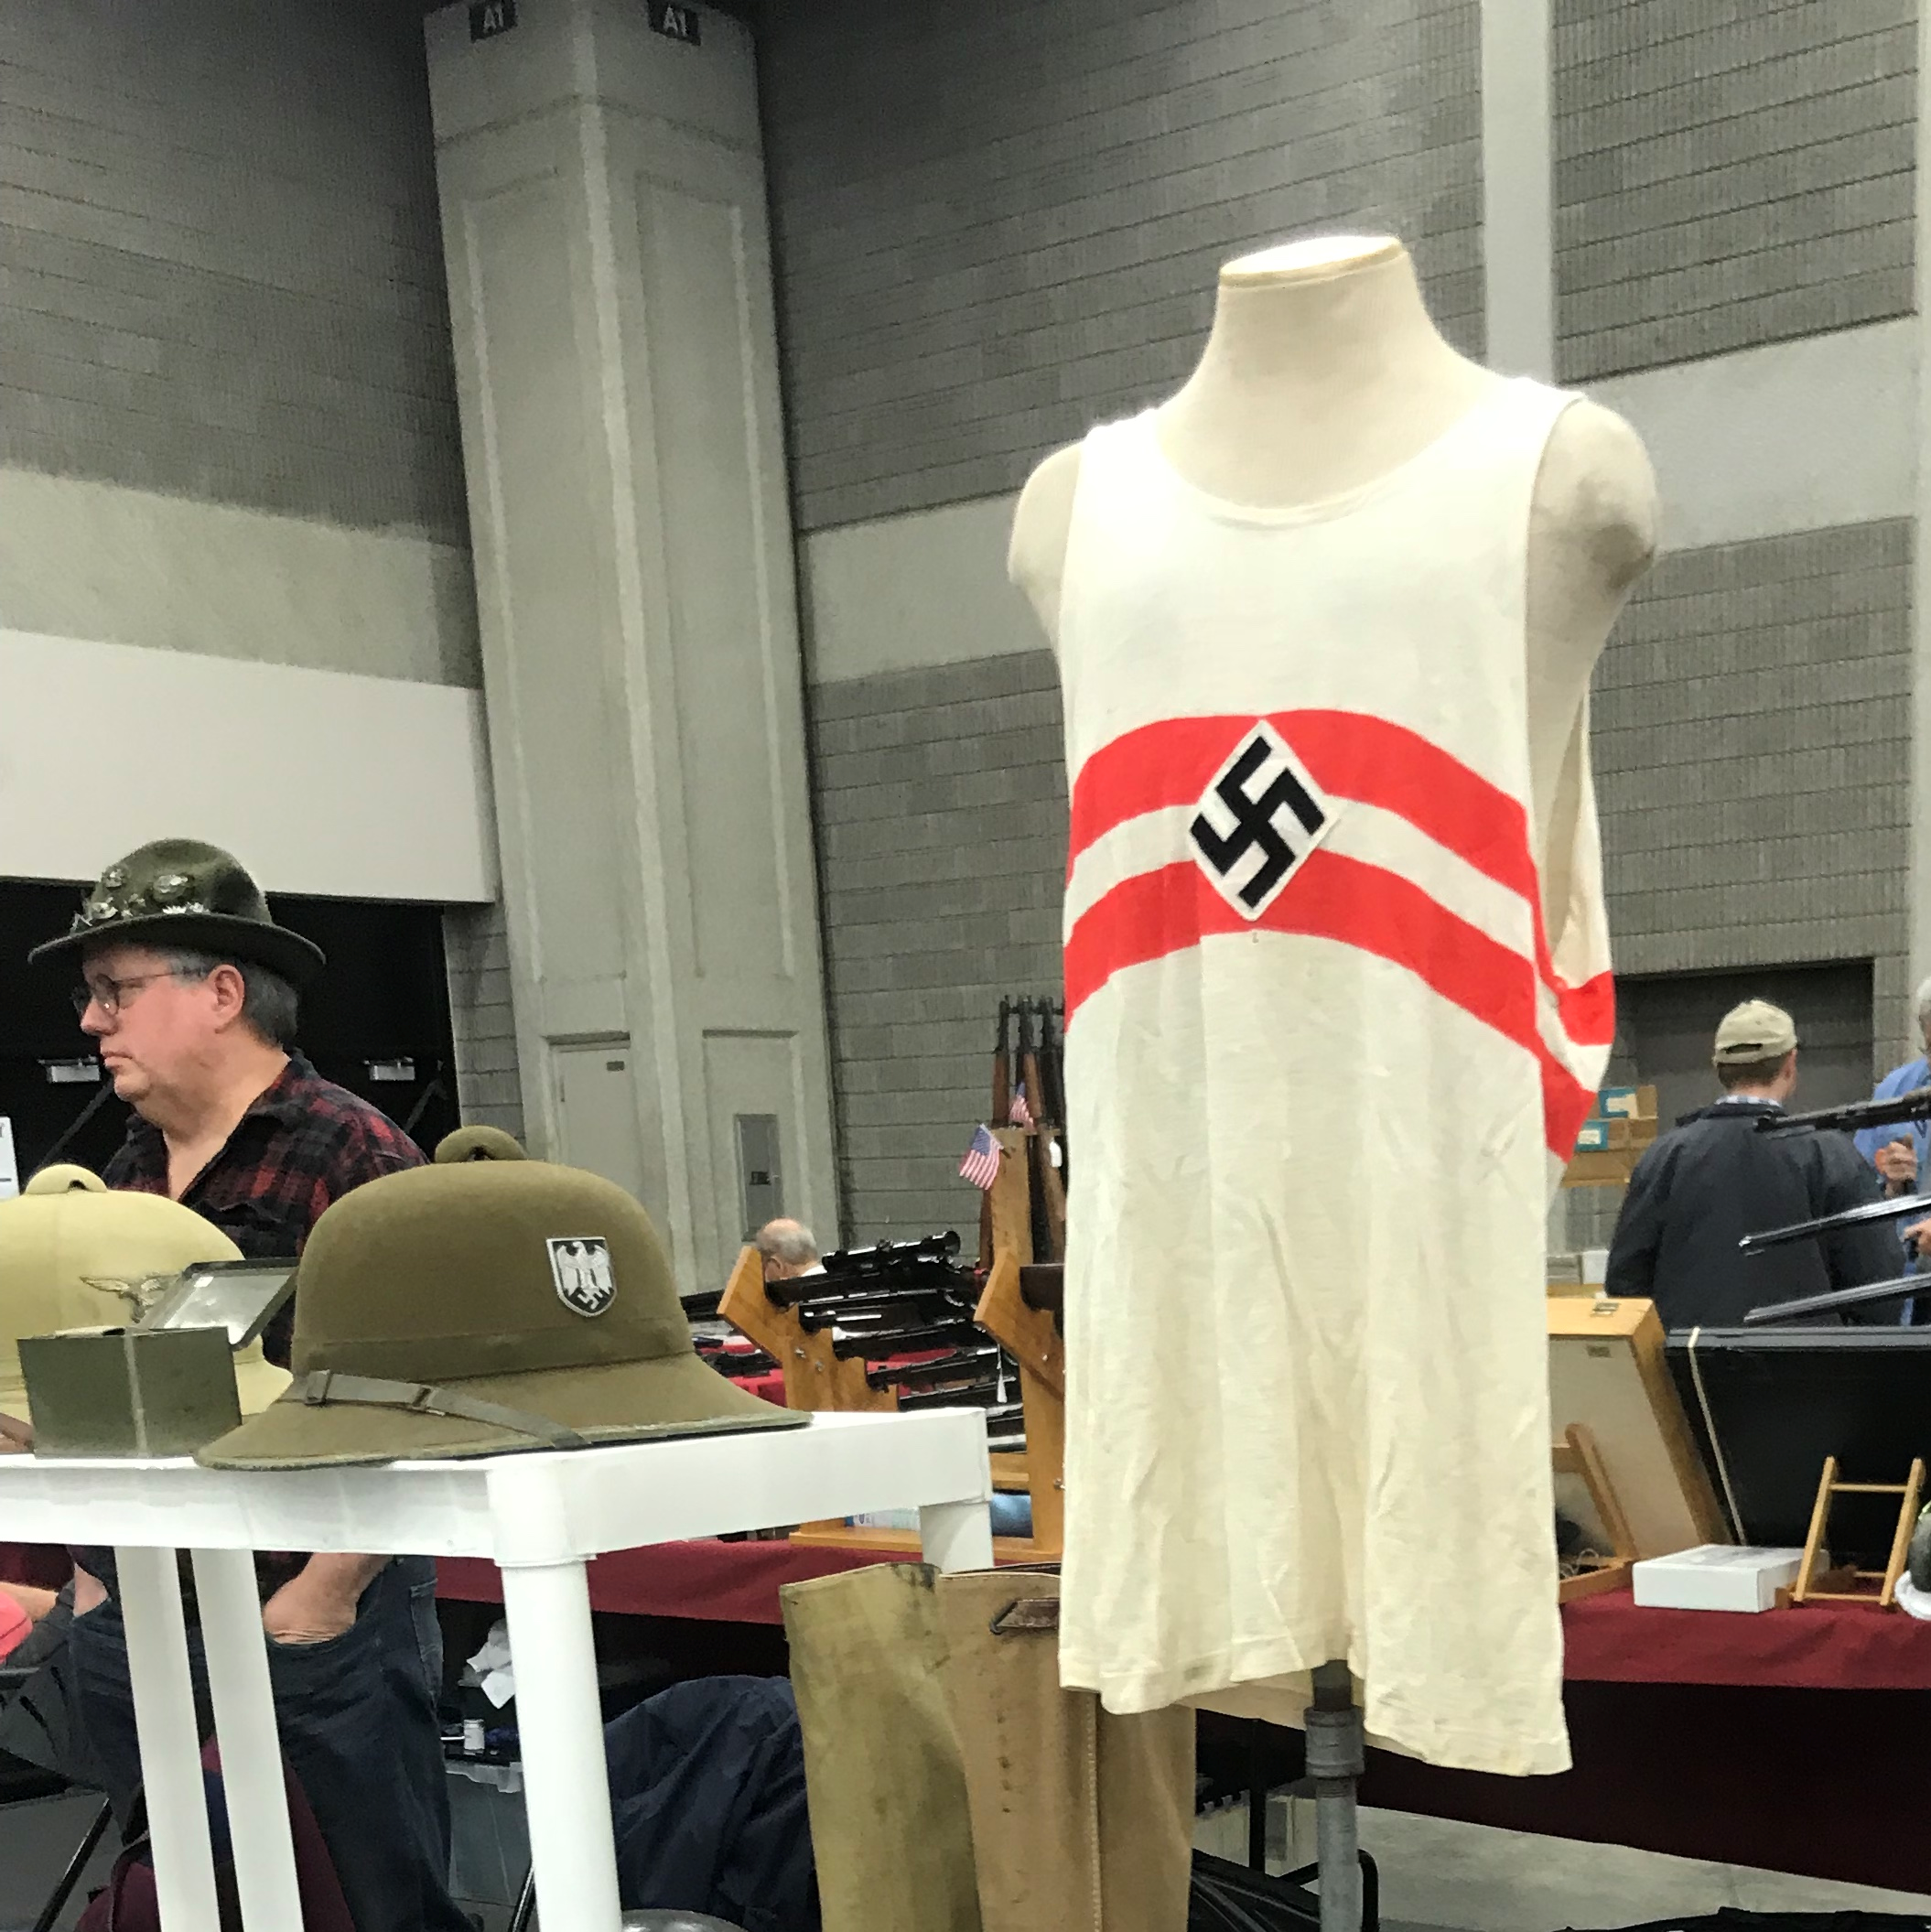 Louisville gun shows peddle more Nazi crap than those in nearby cities